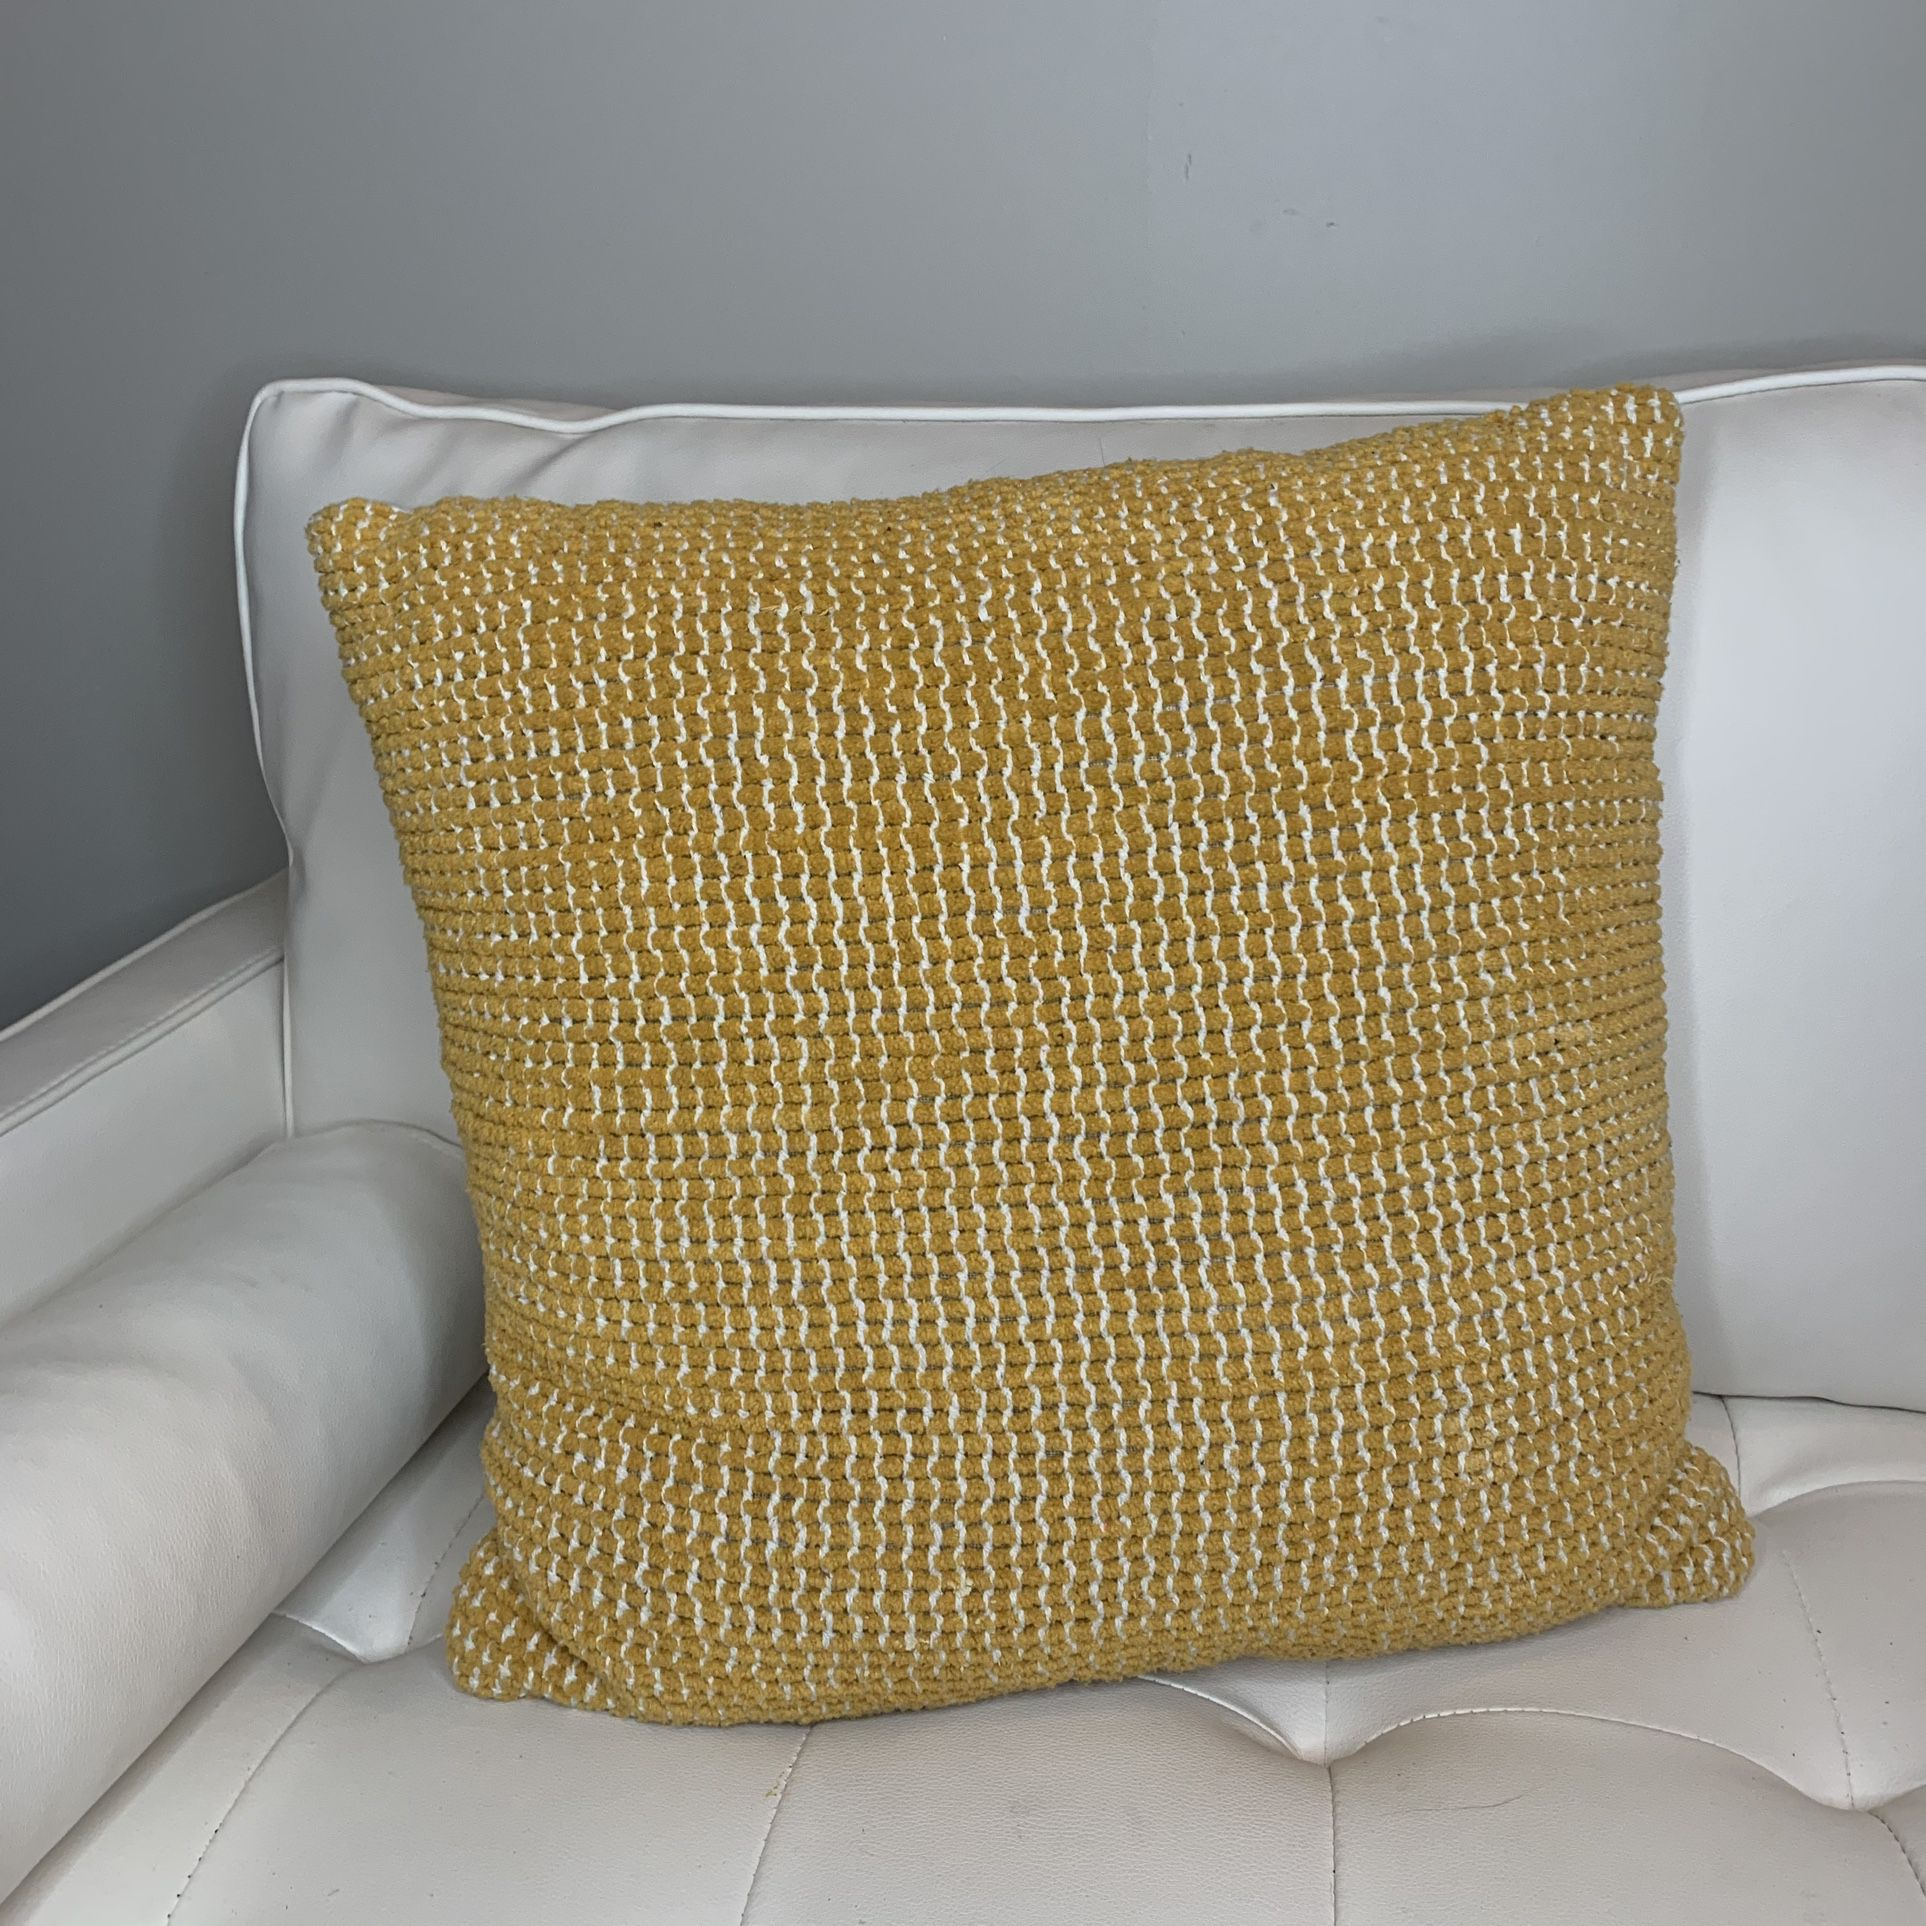 Mustard Color Accent Pillow | Yellow Accent Pillow | Textured Accent Pillow